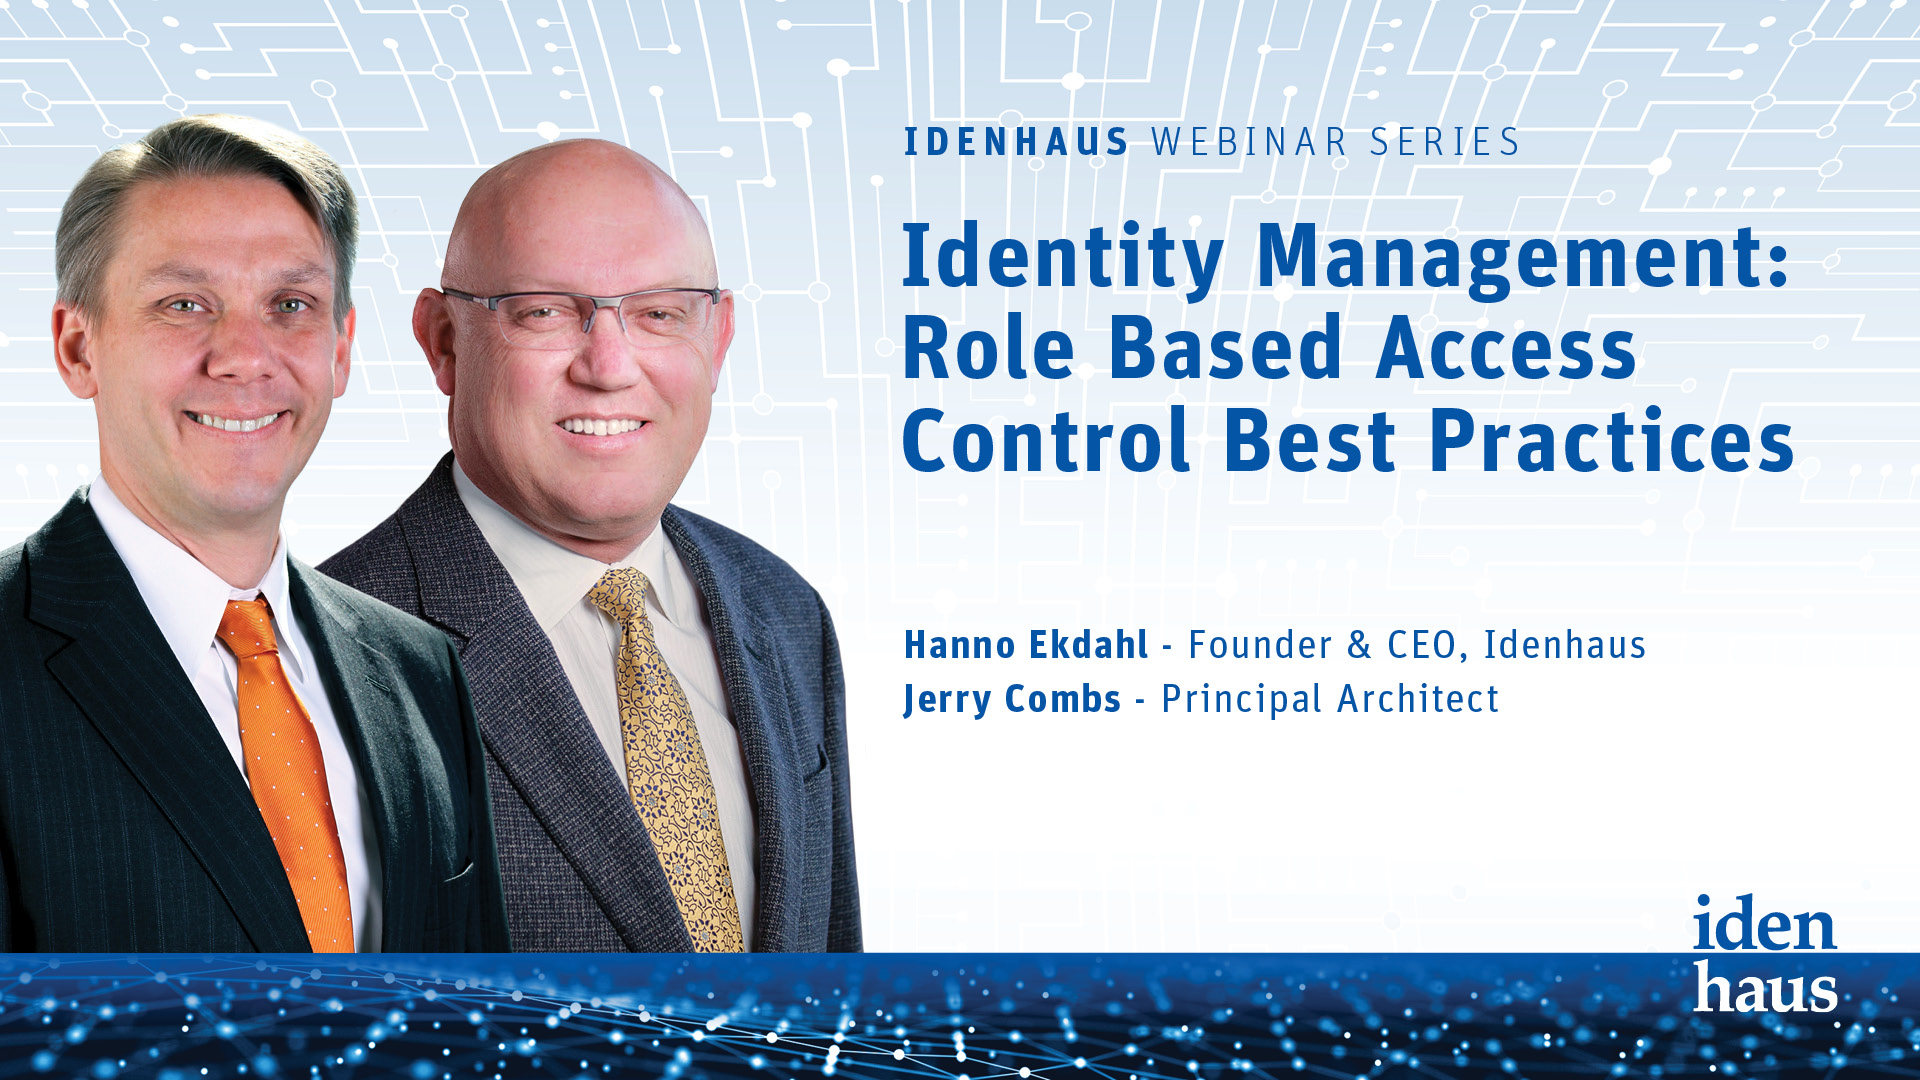 Identity Management-Role Based Access Control Best Practices